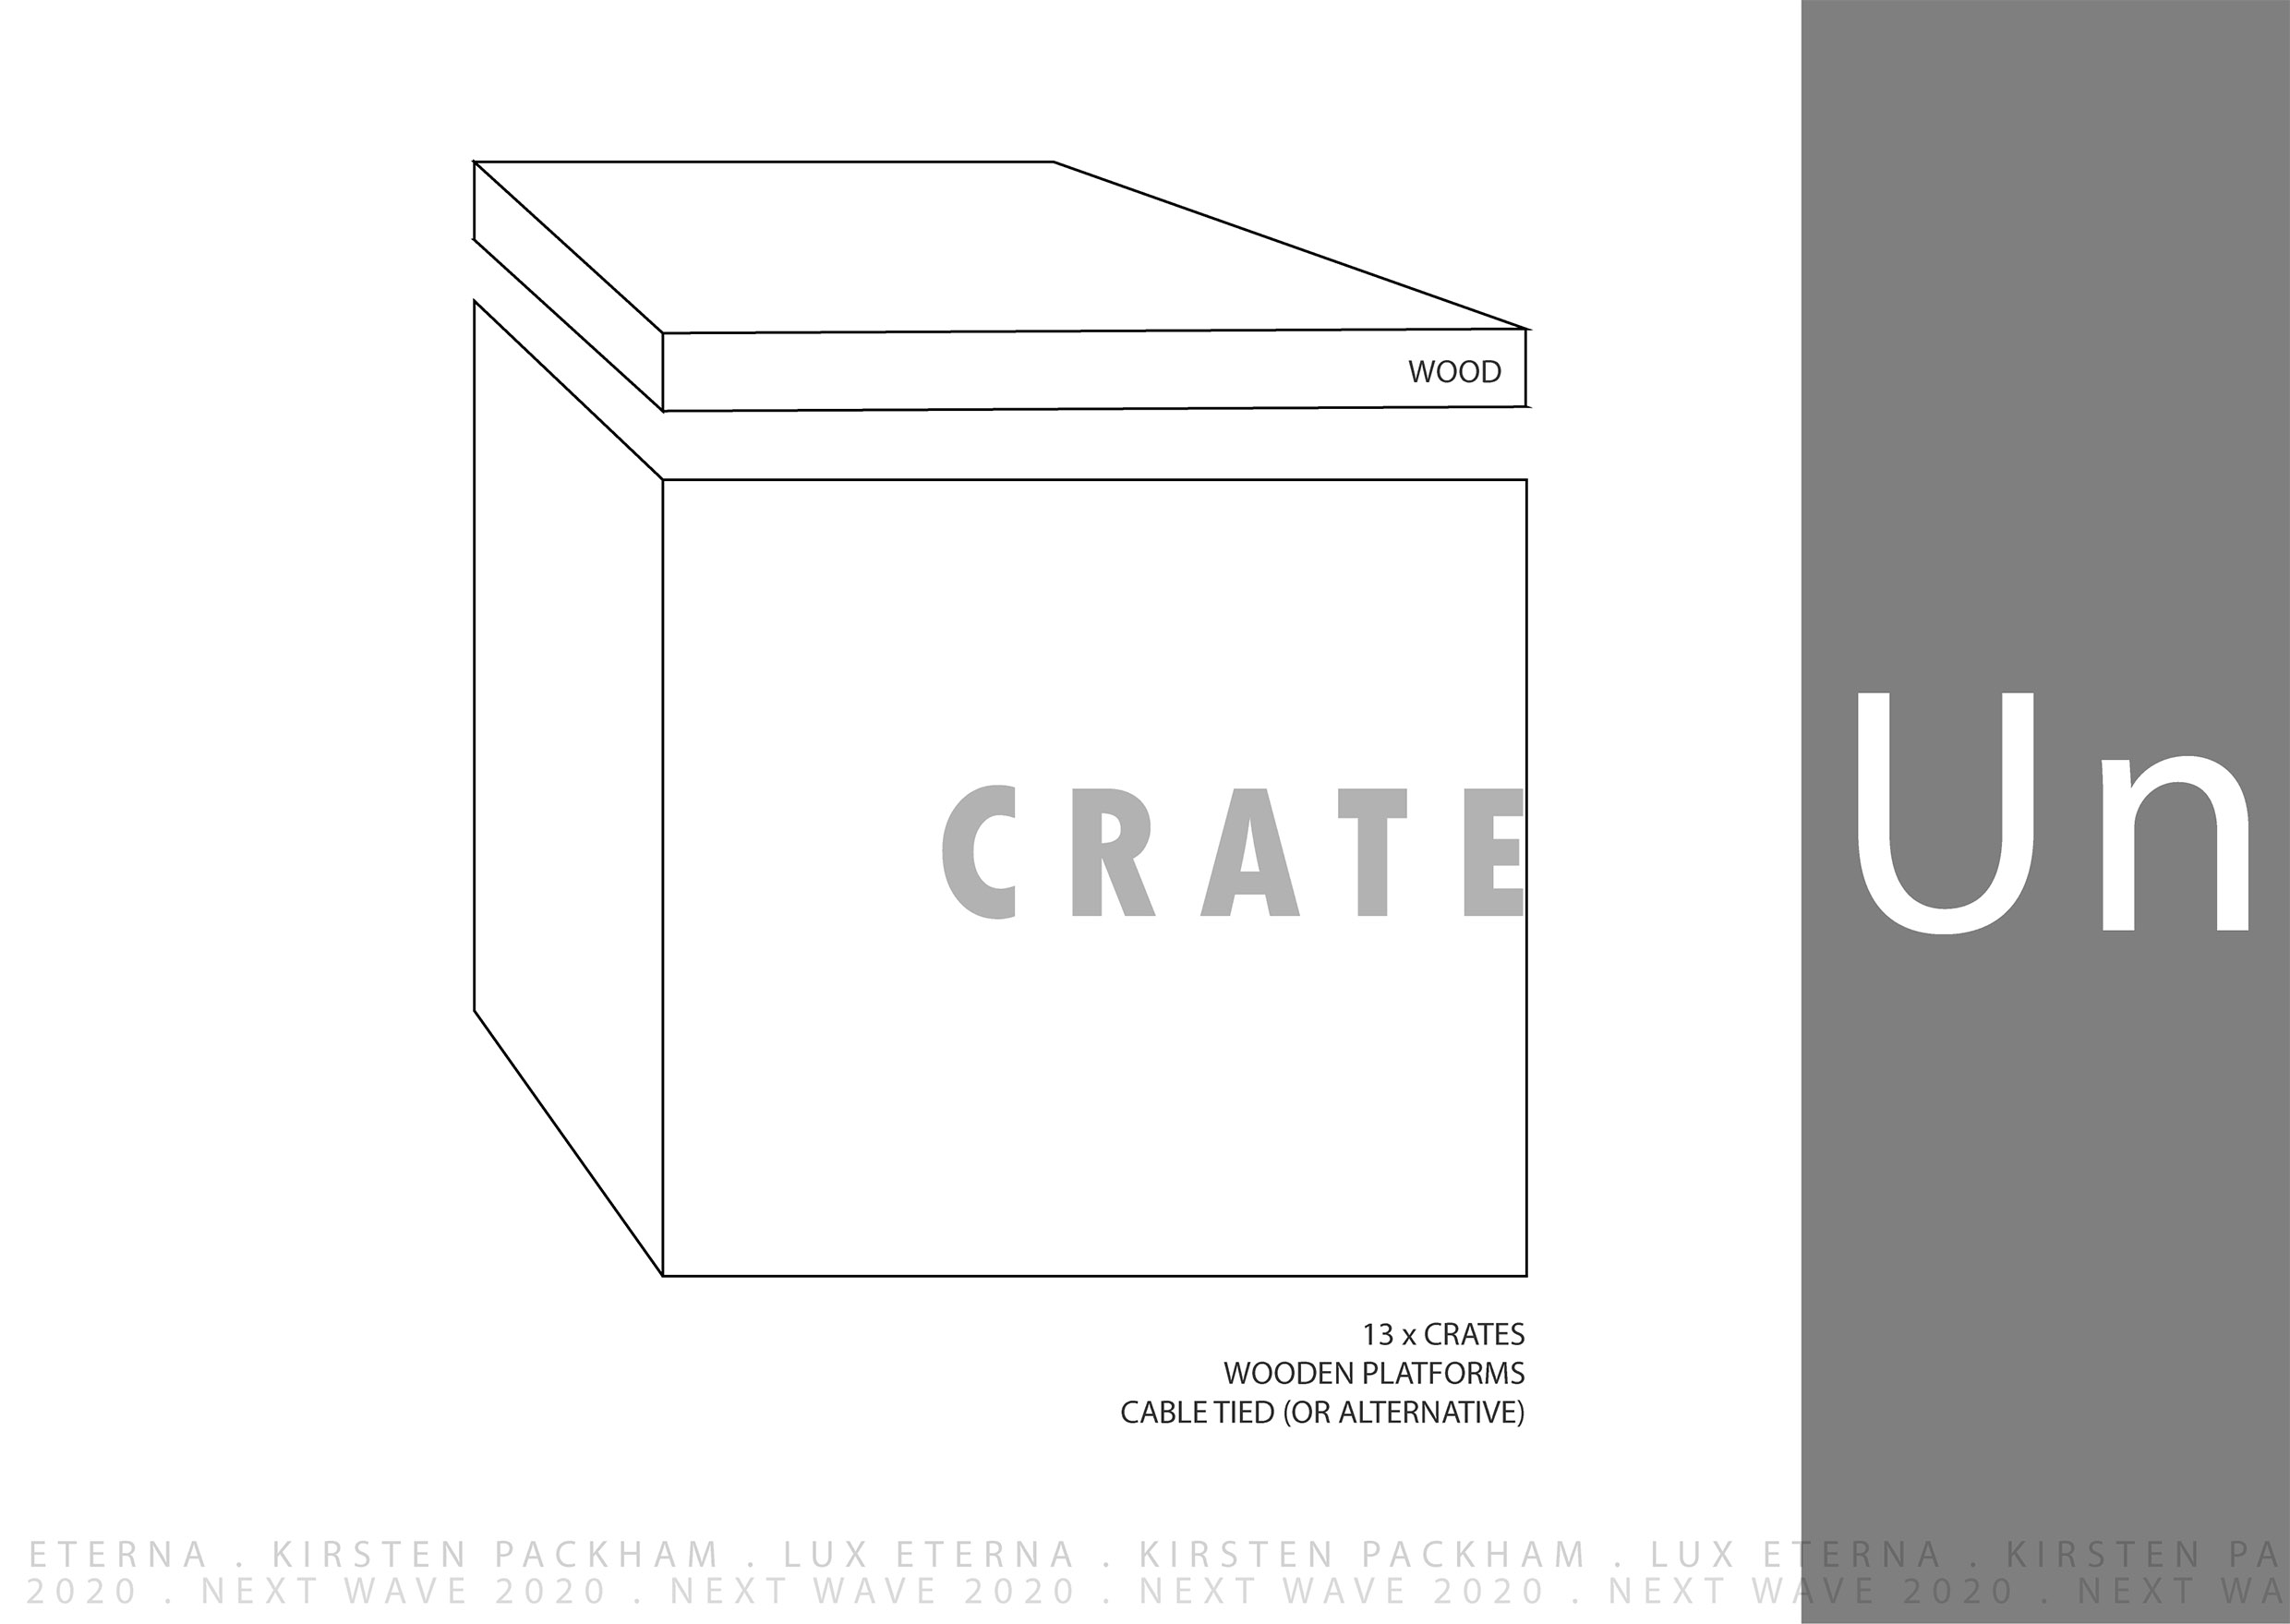 NW_UN_LEKP_CRATE_UPCYCLE.jpg